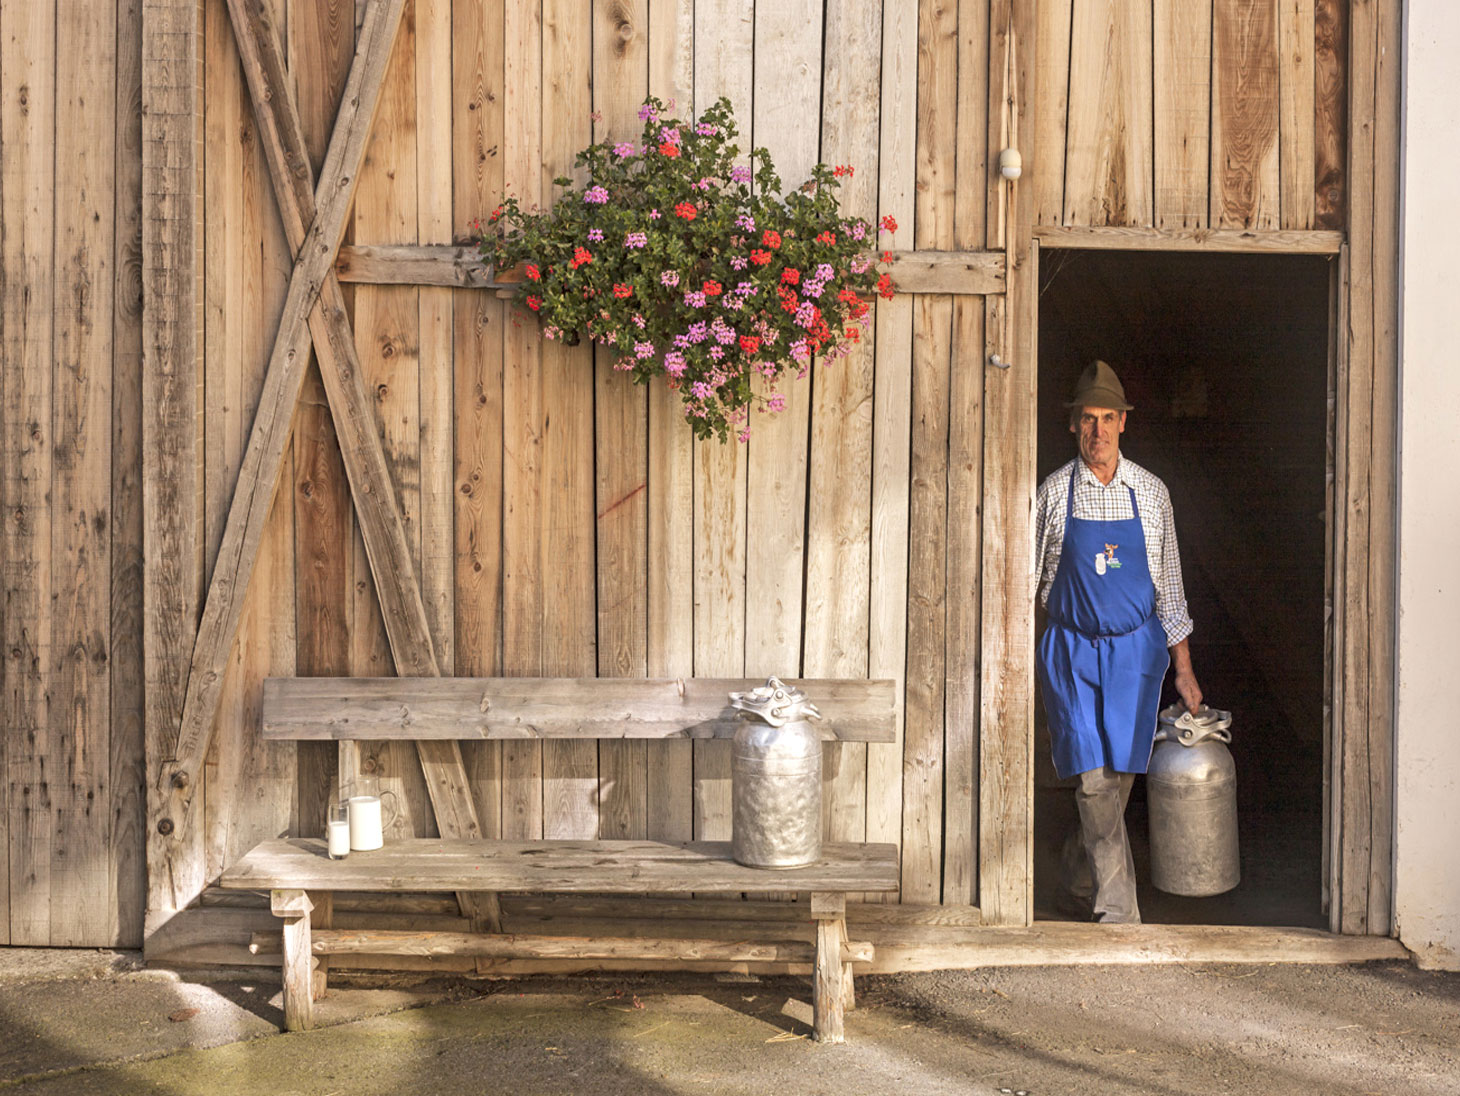 Tre cime: hay milk and sustainability